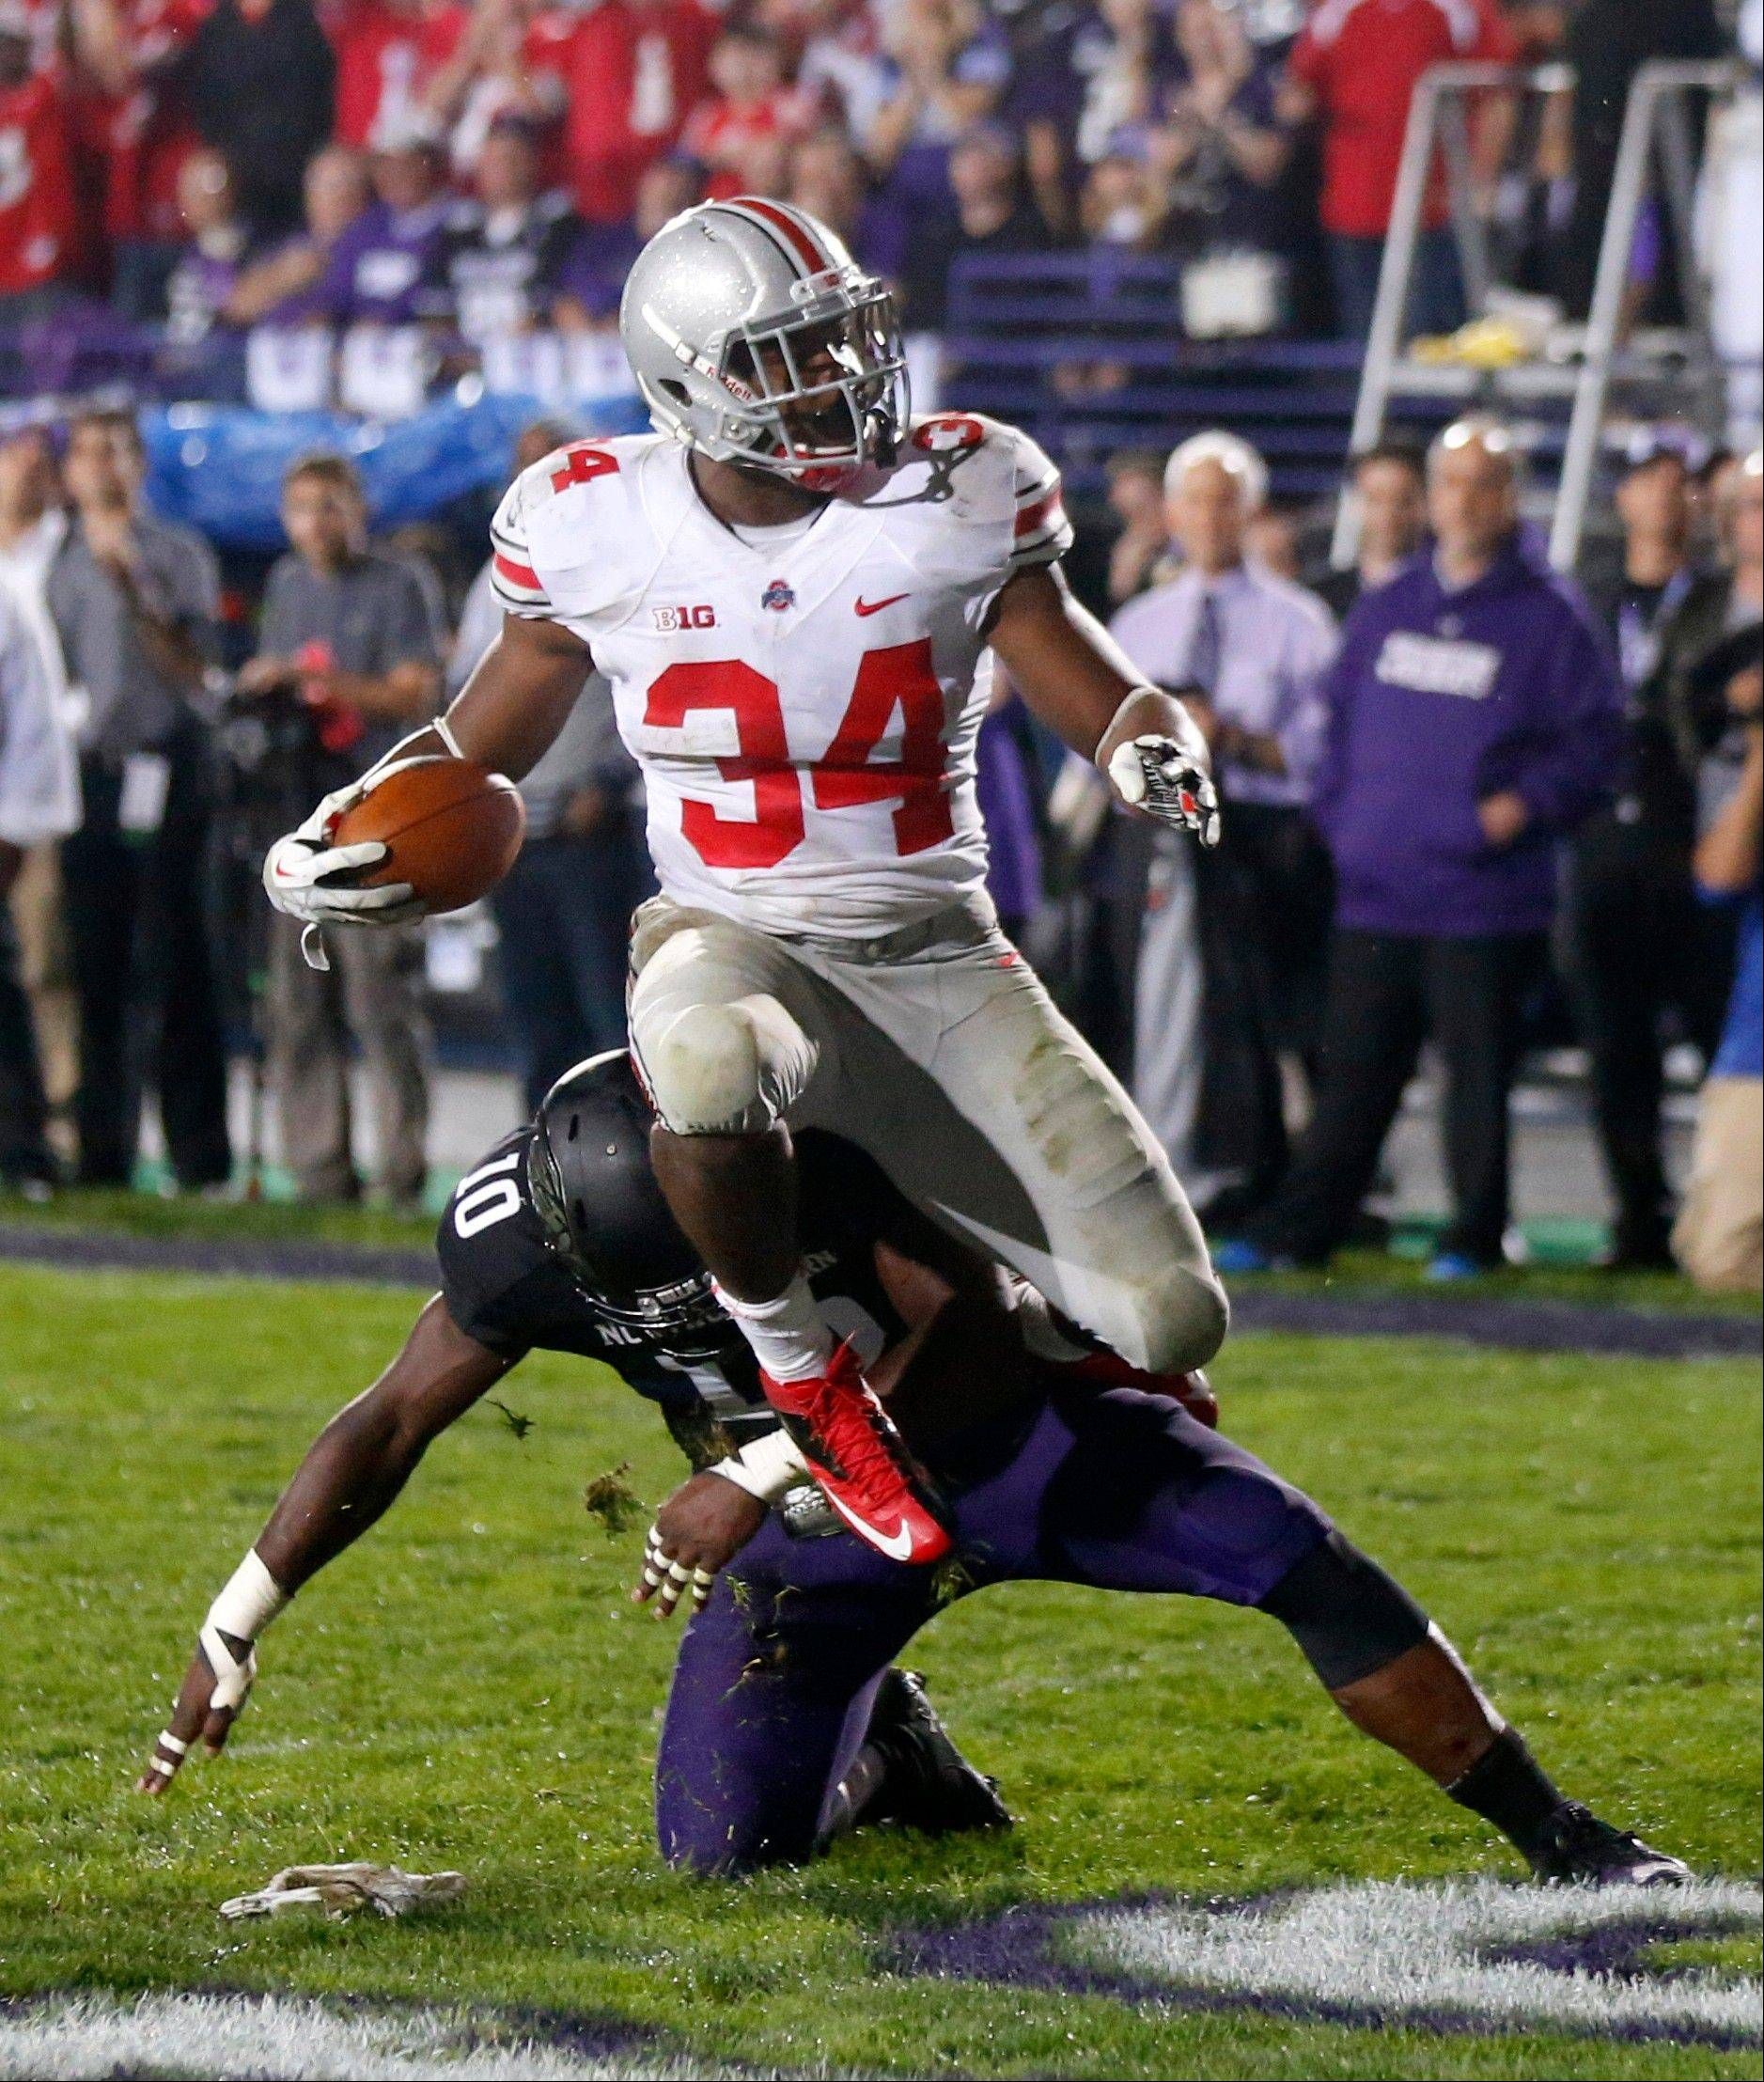 Meyer loves to run, yet no tailback has 1,000 yards